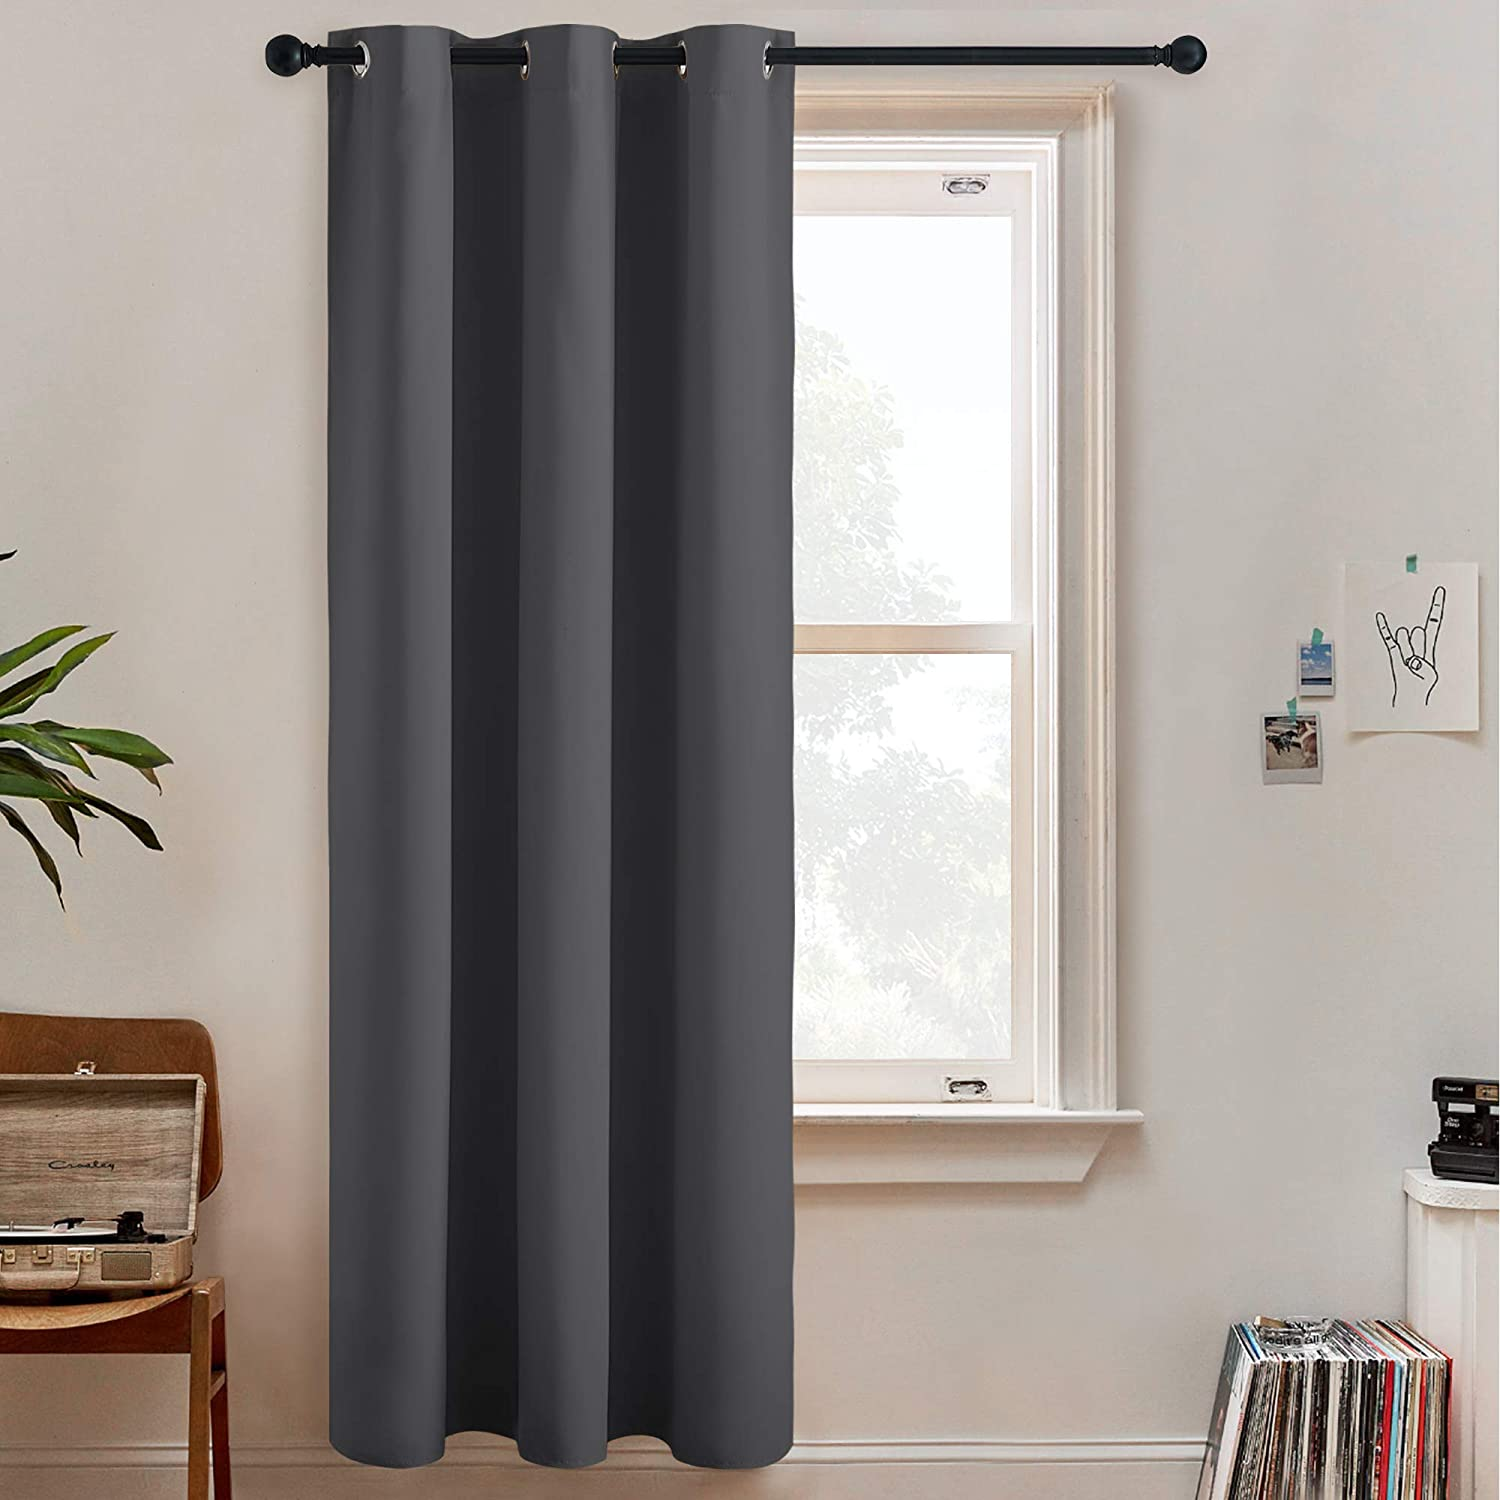 RYB HOME Room Dividers Curtain - Grommet Blackout Wall Divider Drapes Thermal Insulated 100% Privacy Drapes for Bedroom Living Room Doorway, 1 Panel, Grey, 60 inch Wide x 84 inch Long